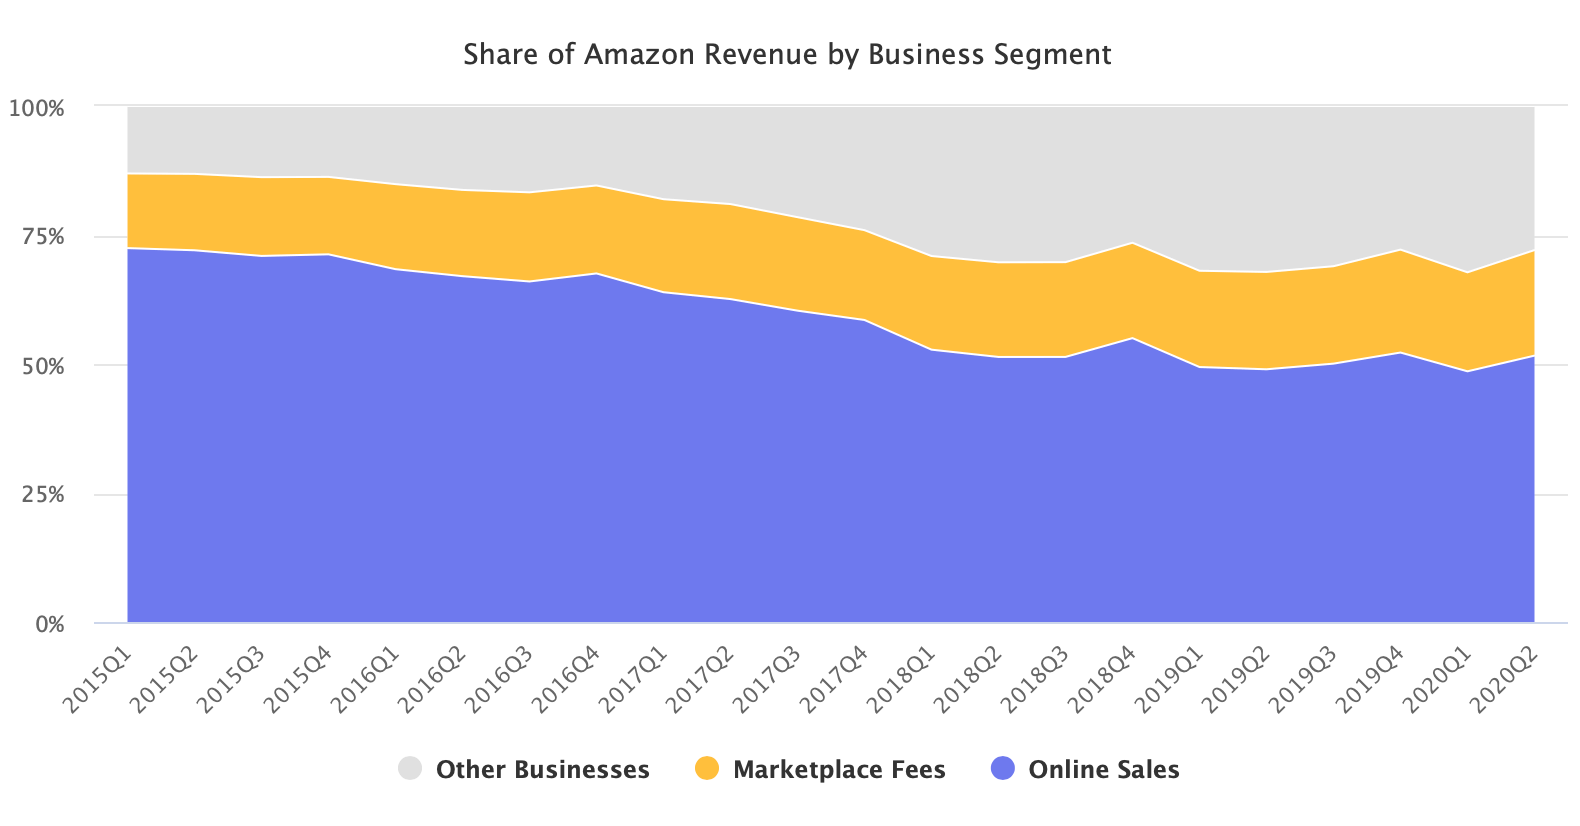 Share of Amazon Revenue by Business Segment